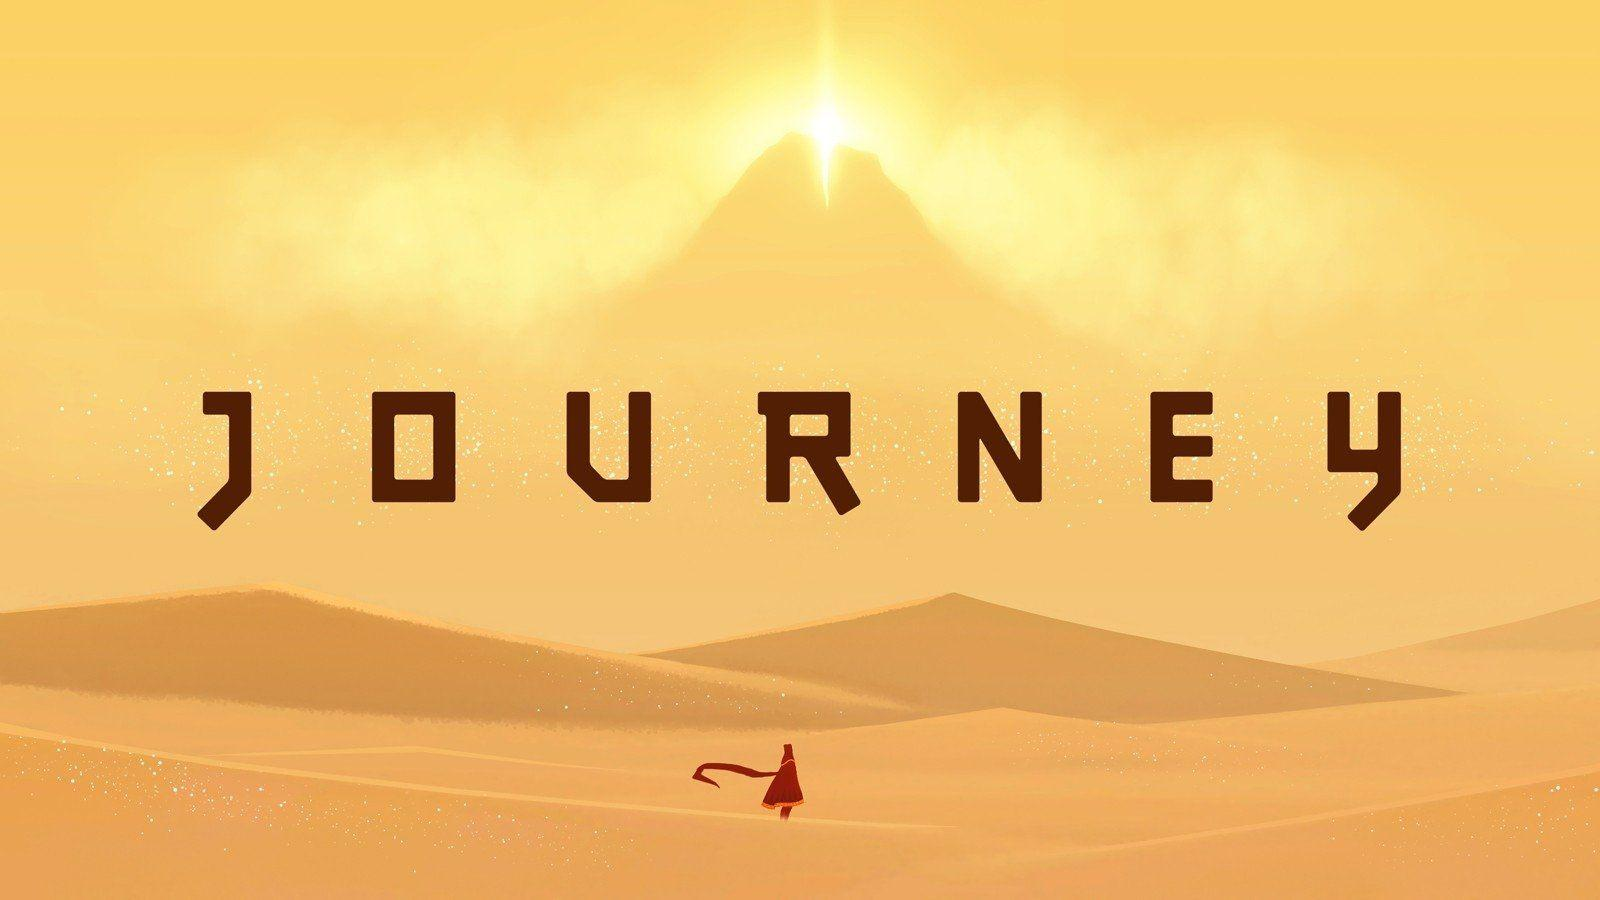 Journey wallpapers Wallpapers and Backgrounds Image